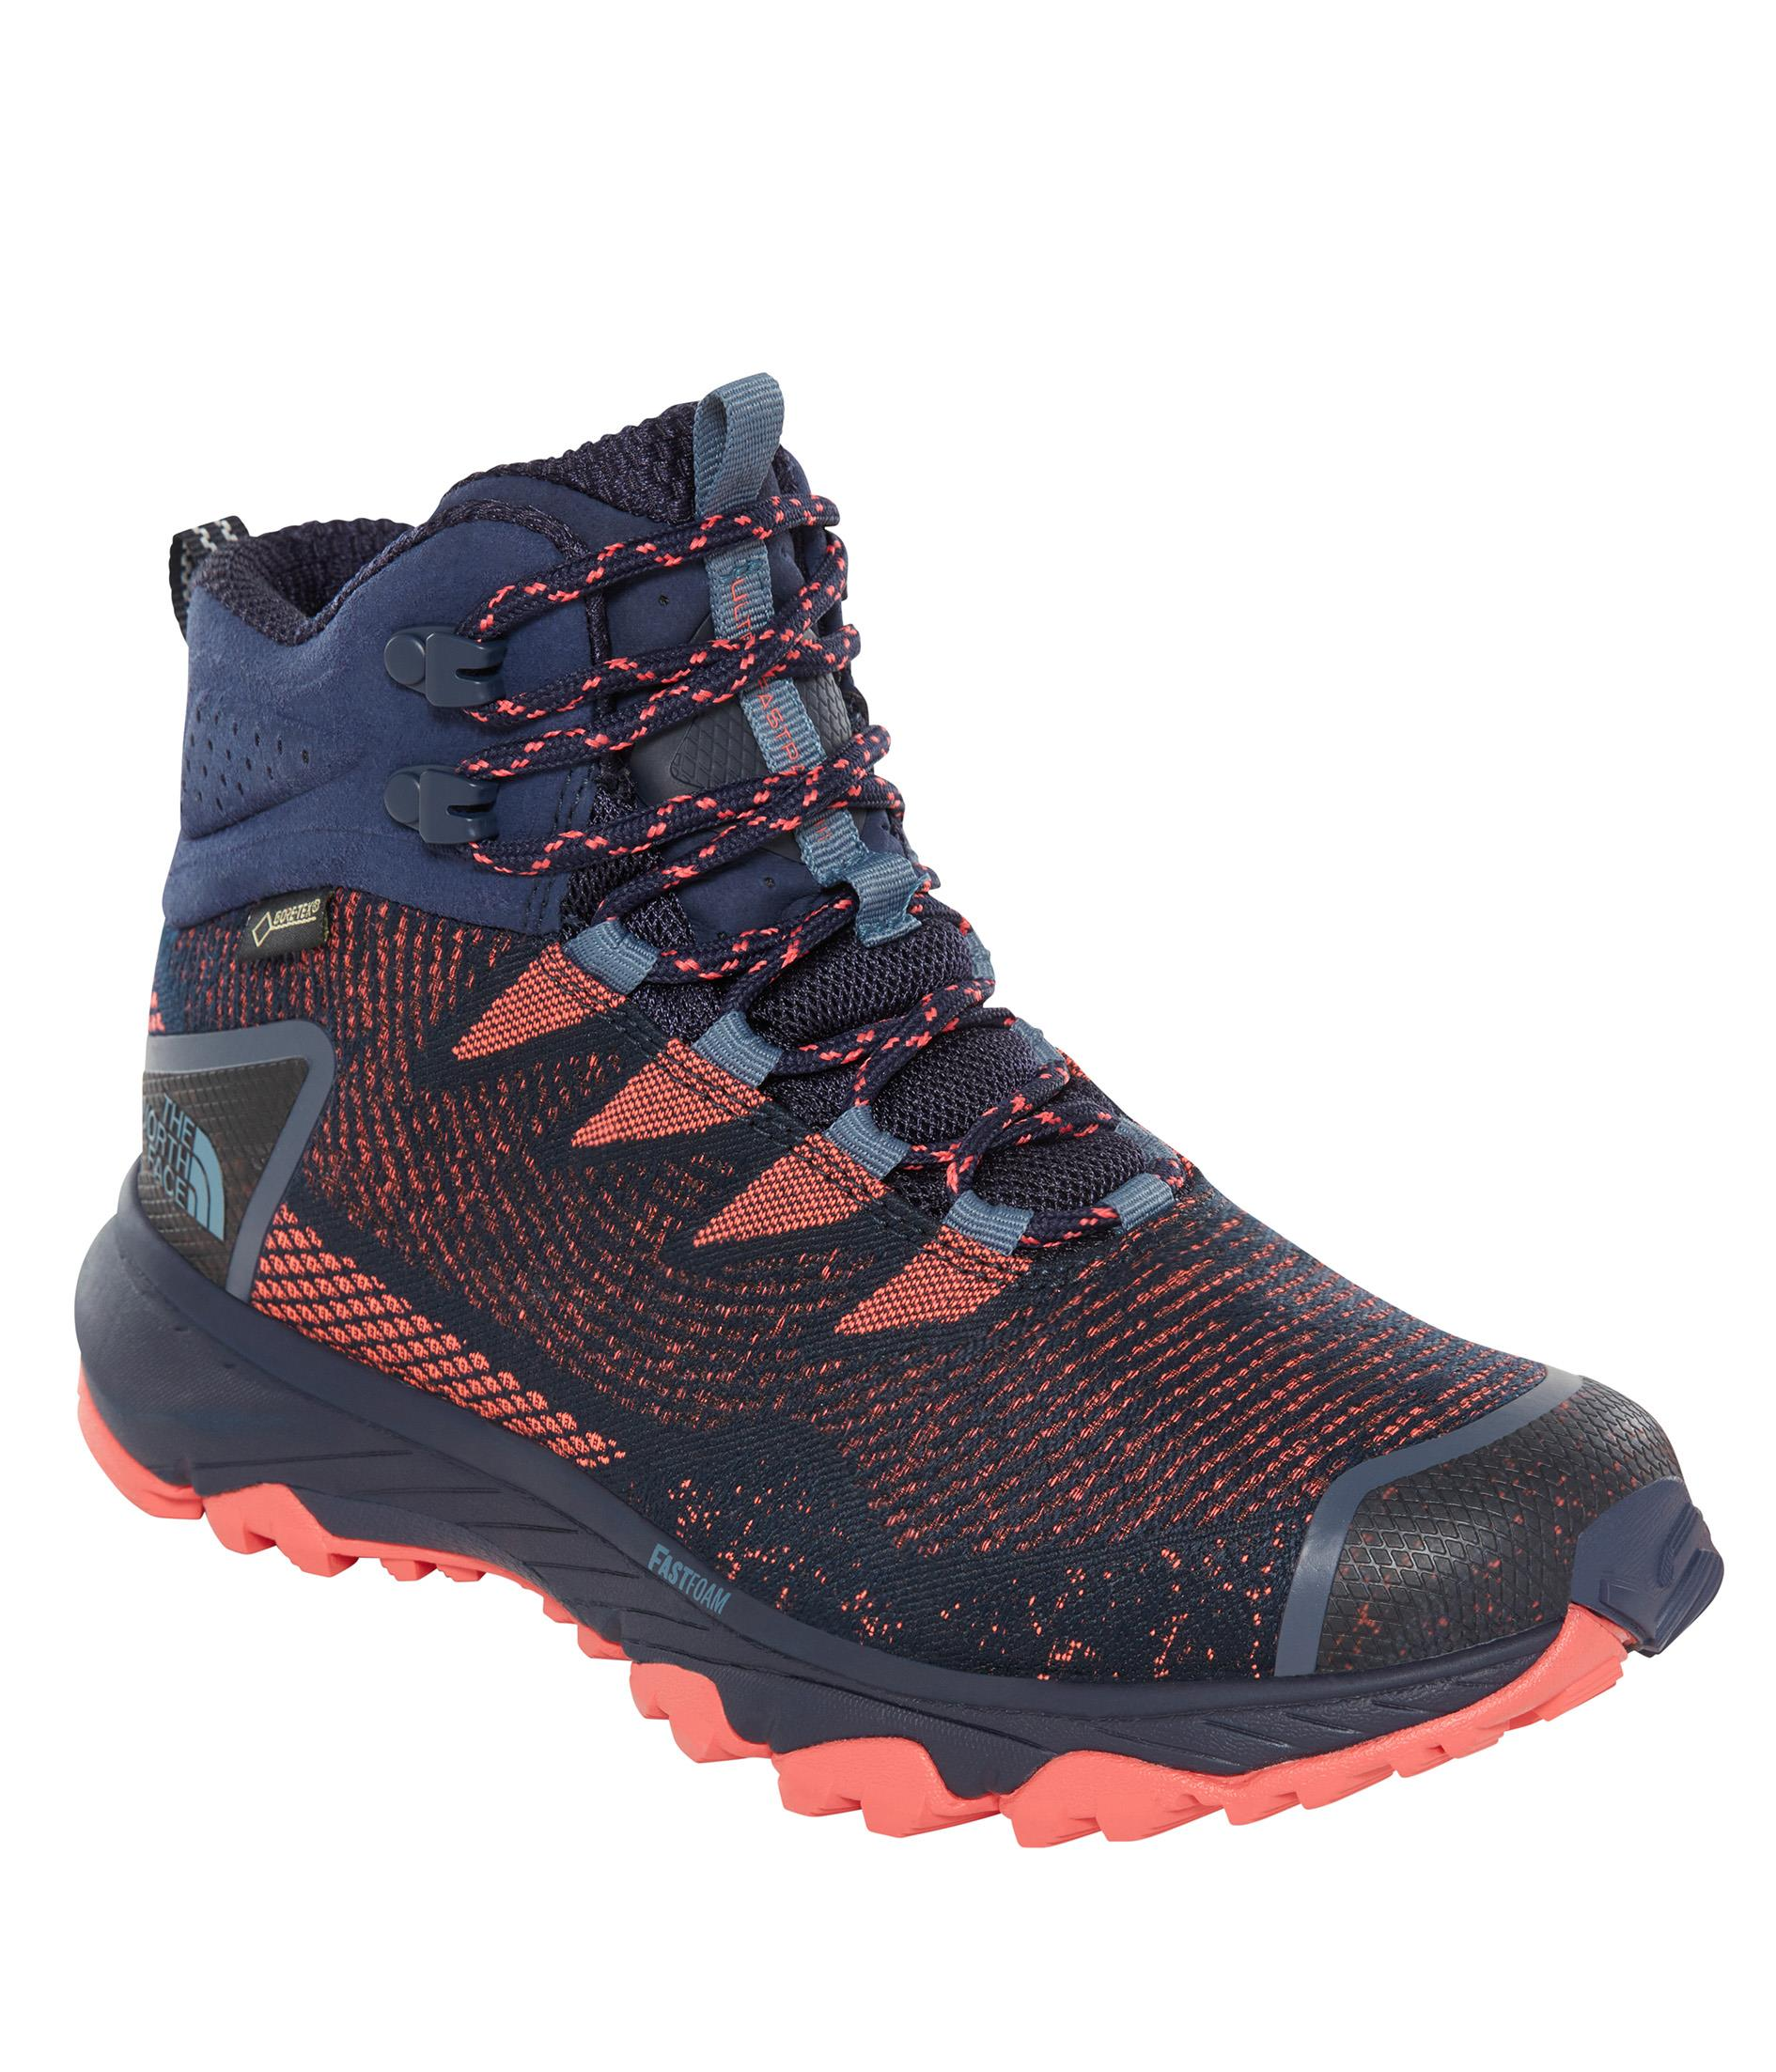 The North Face Kadın Bot  Ultra Fastpack III Mid Goretex  Nf0A3Mkvc7W1